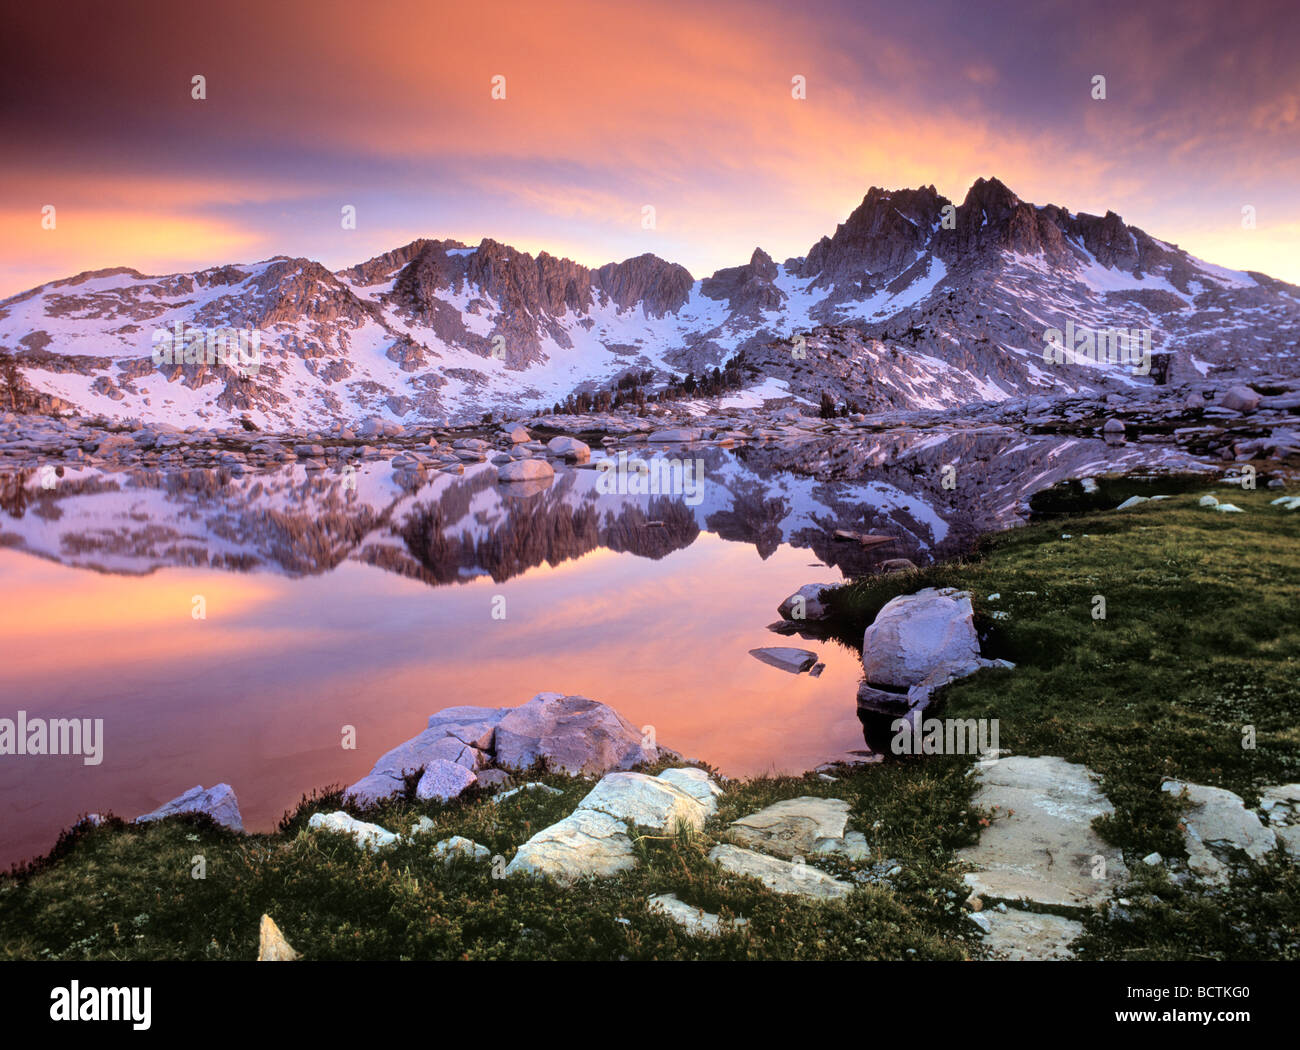 Sierra Nevada Ca: Pacific Crest Trail California Stock Photos & Pacific